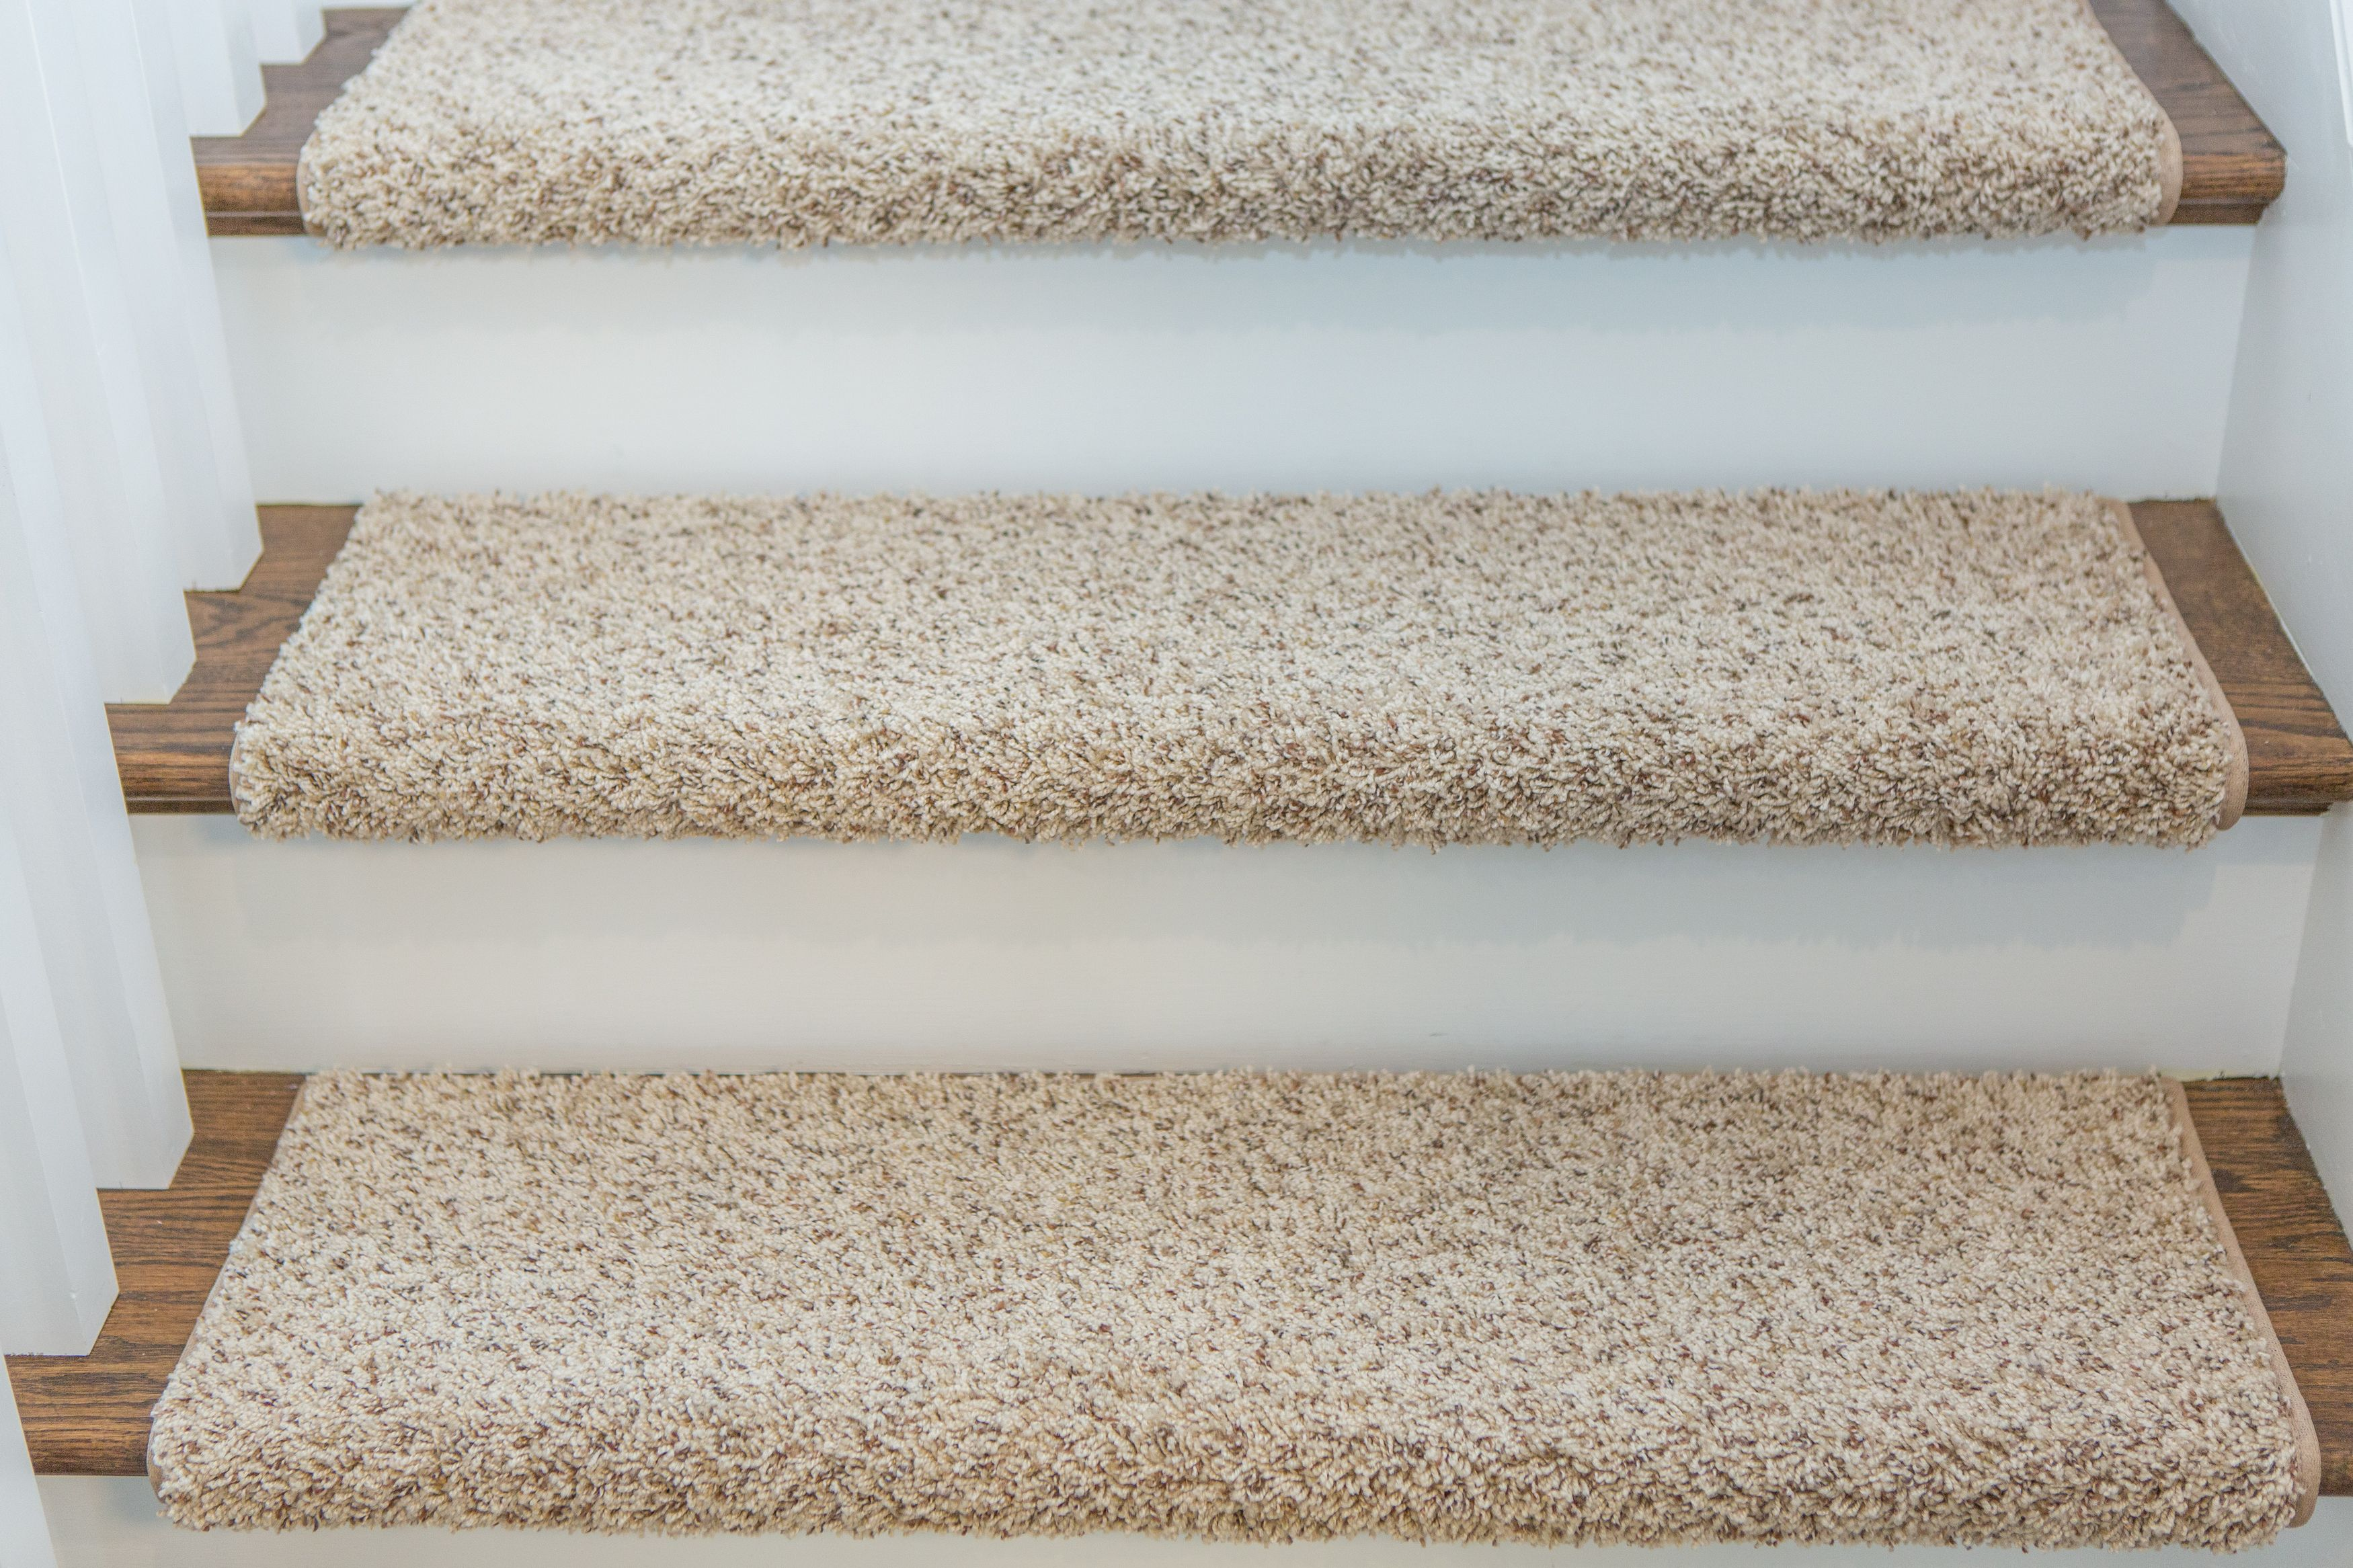 Best Windsor Collection Bullnose Stair Tread Bullnose Carpet 400 x 300